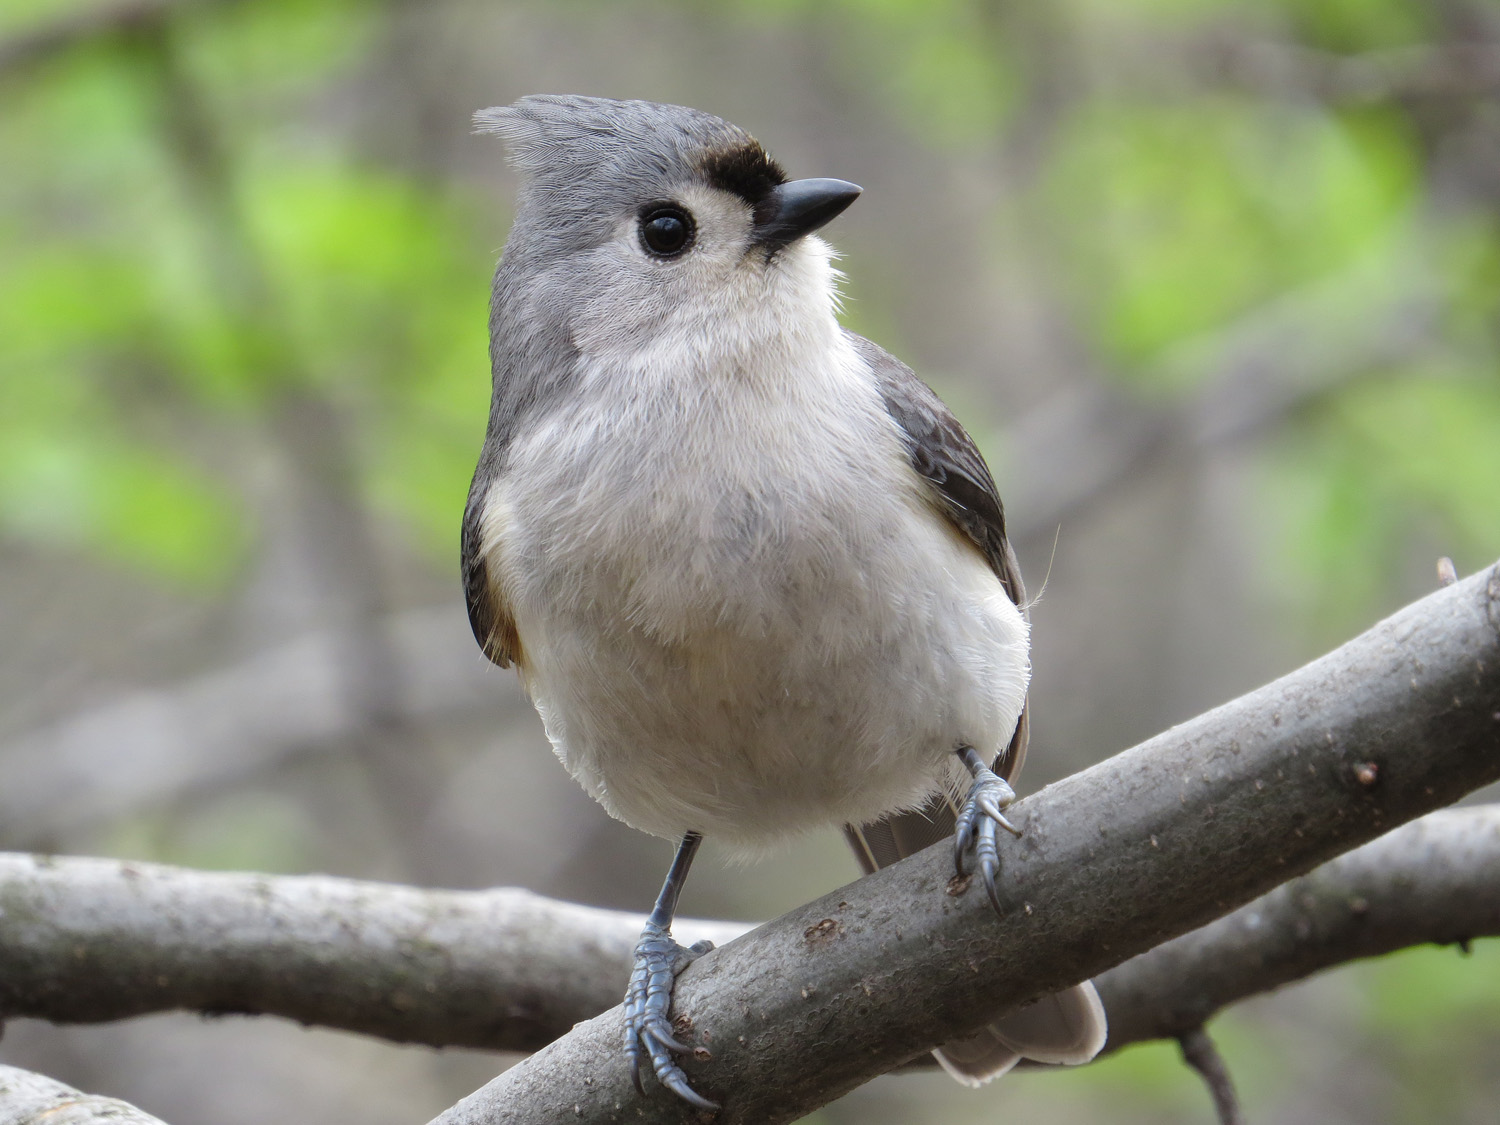 Tufted titmouse, Central Park, April 2016